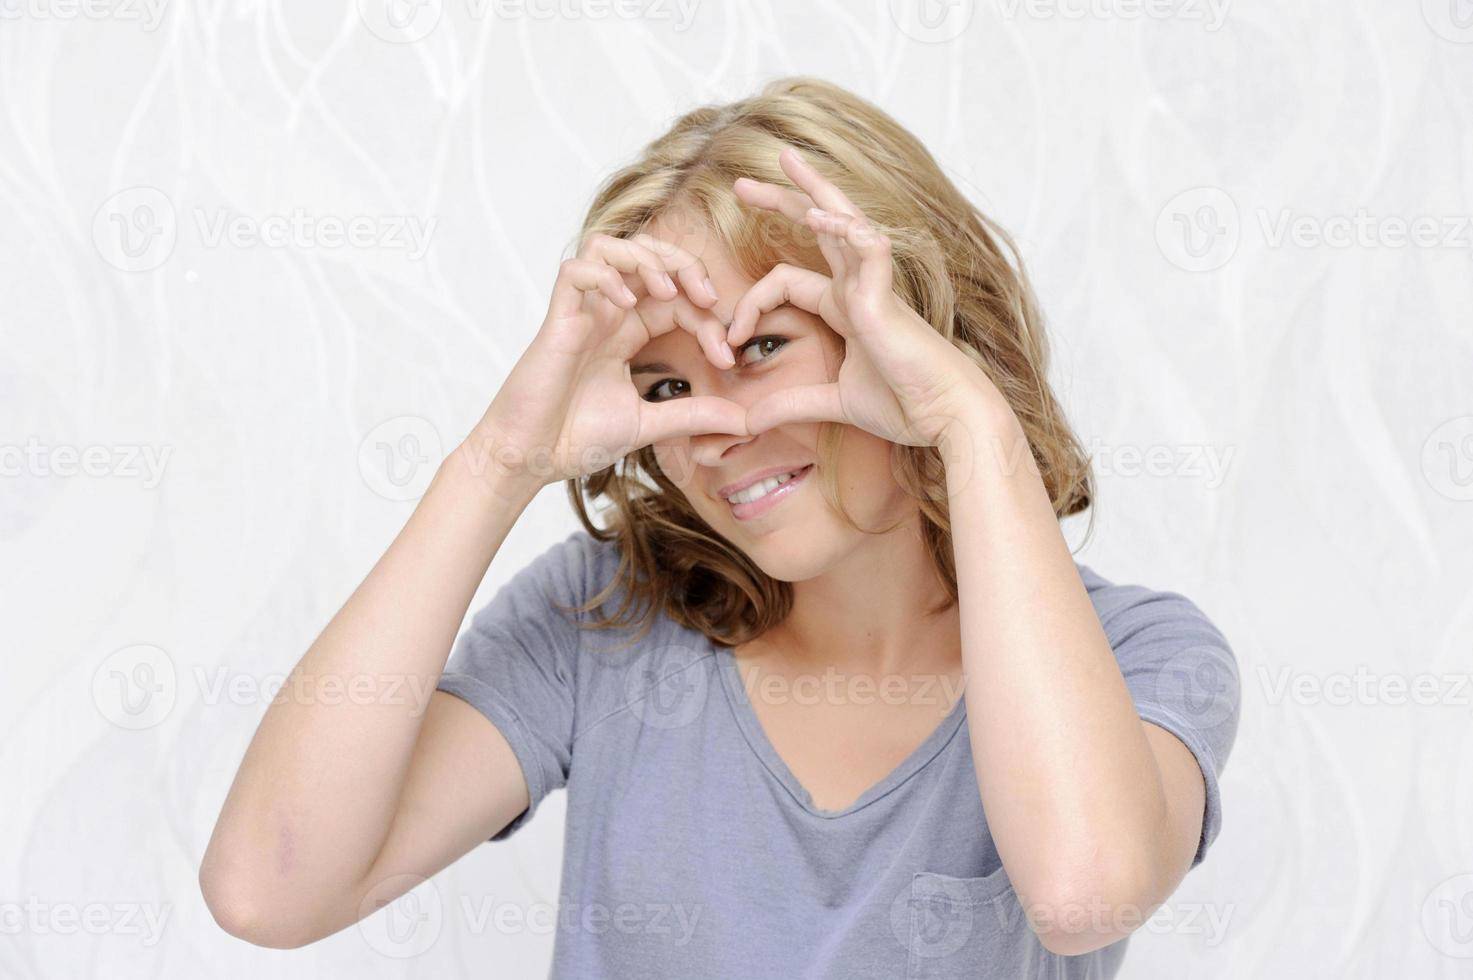 Smiling young woman making heart with fingers photo